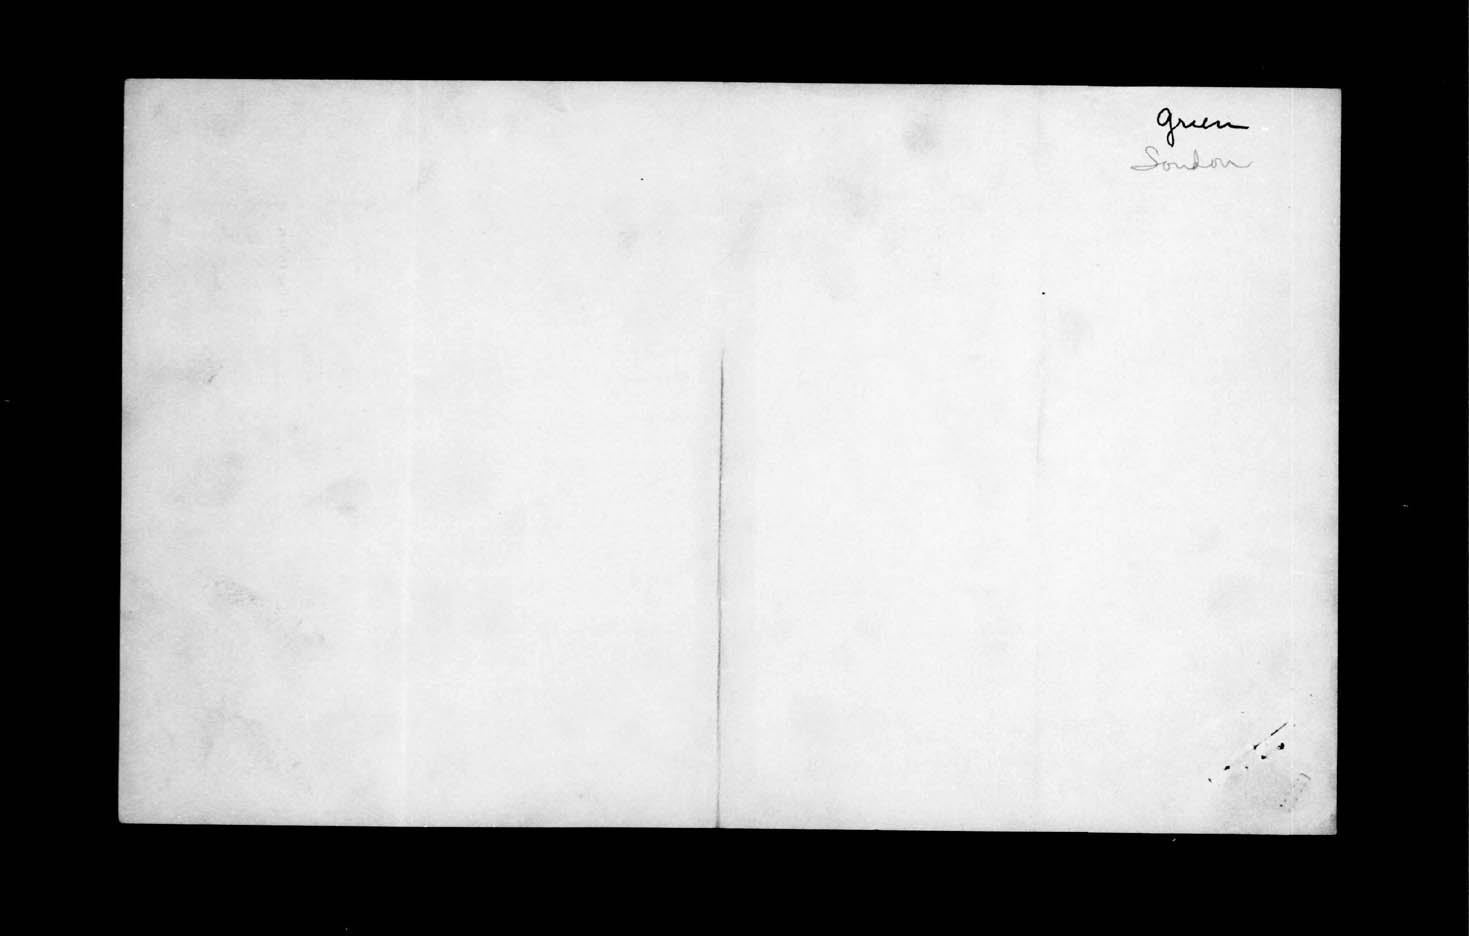 Digitized page of Boer War for Image No.: e002174097